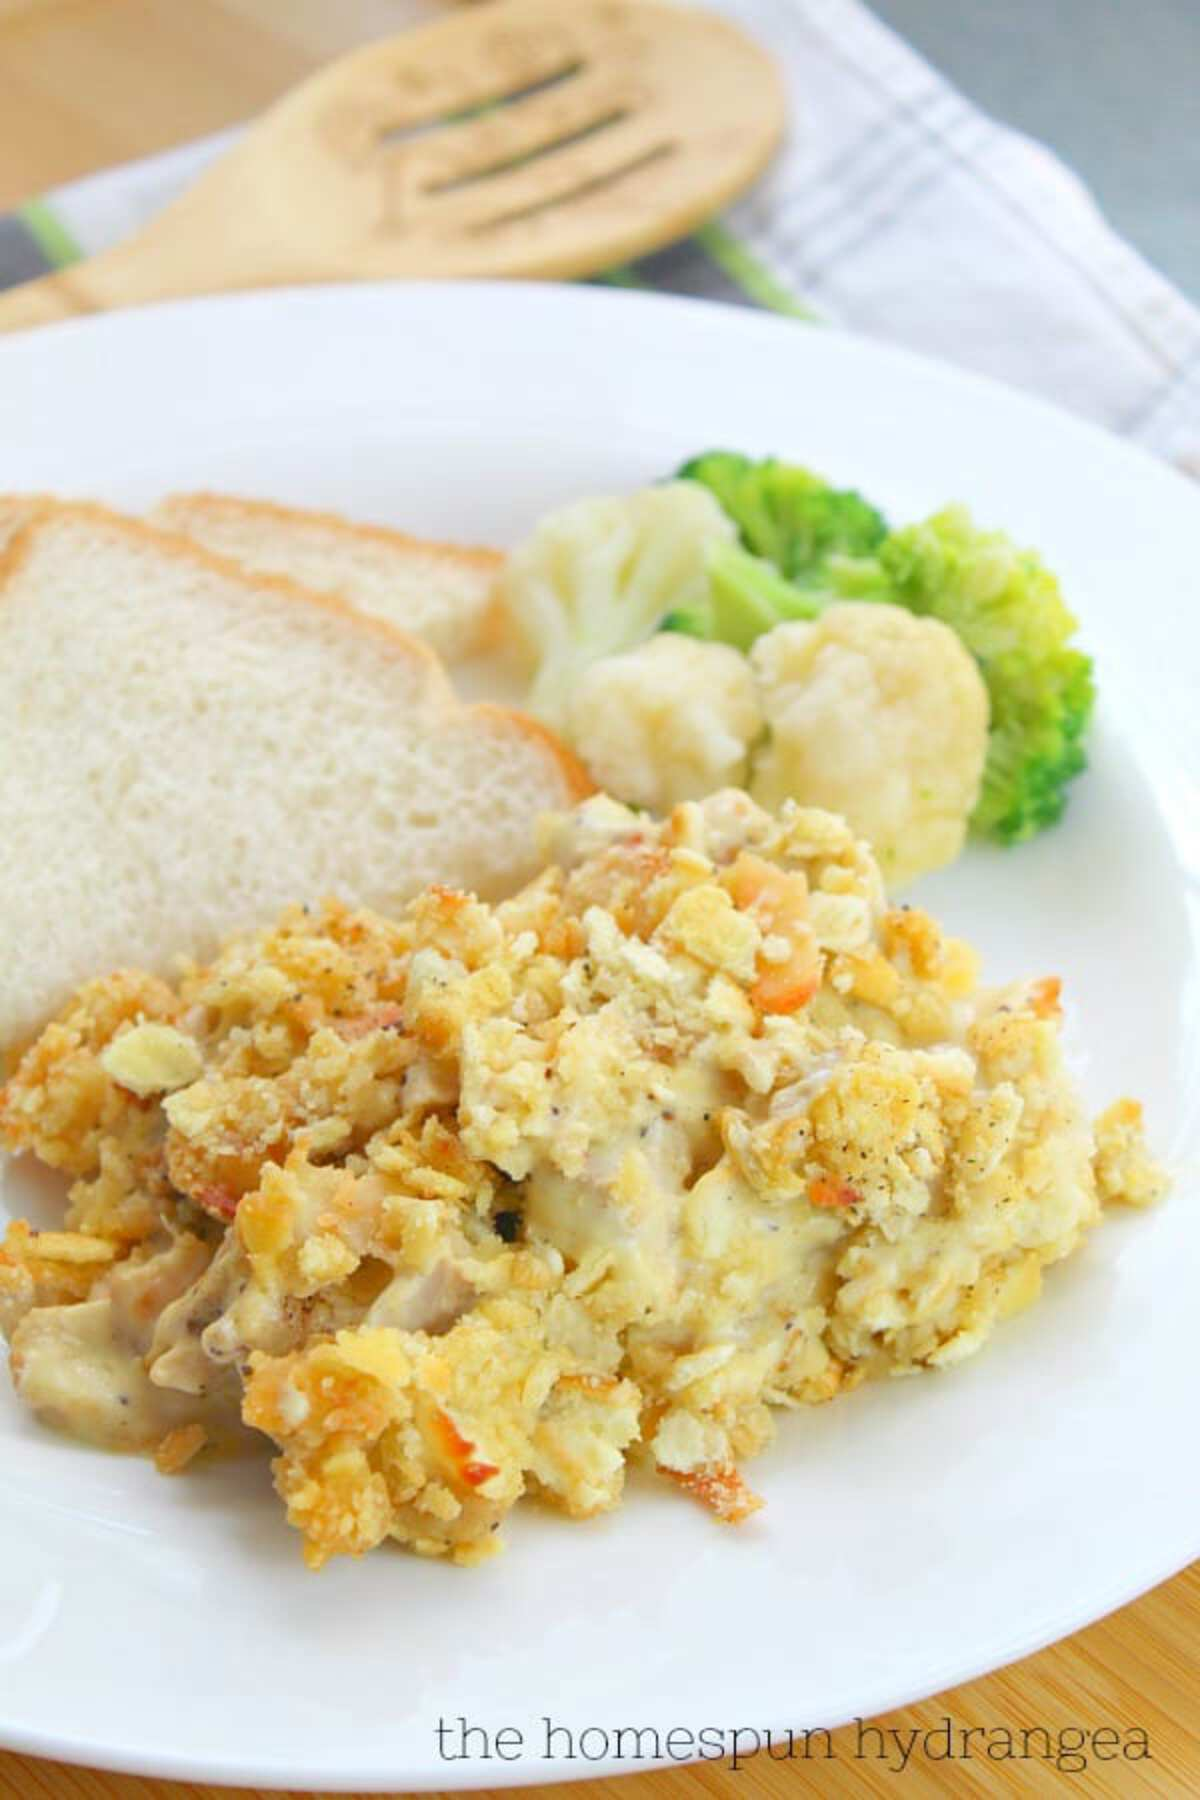 Chicken casserole on plate with bread